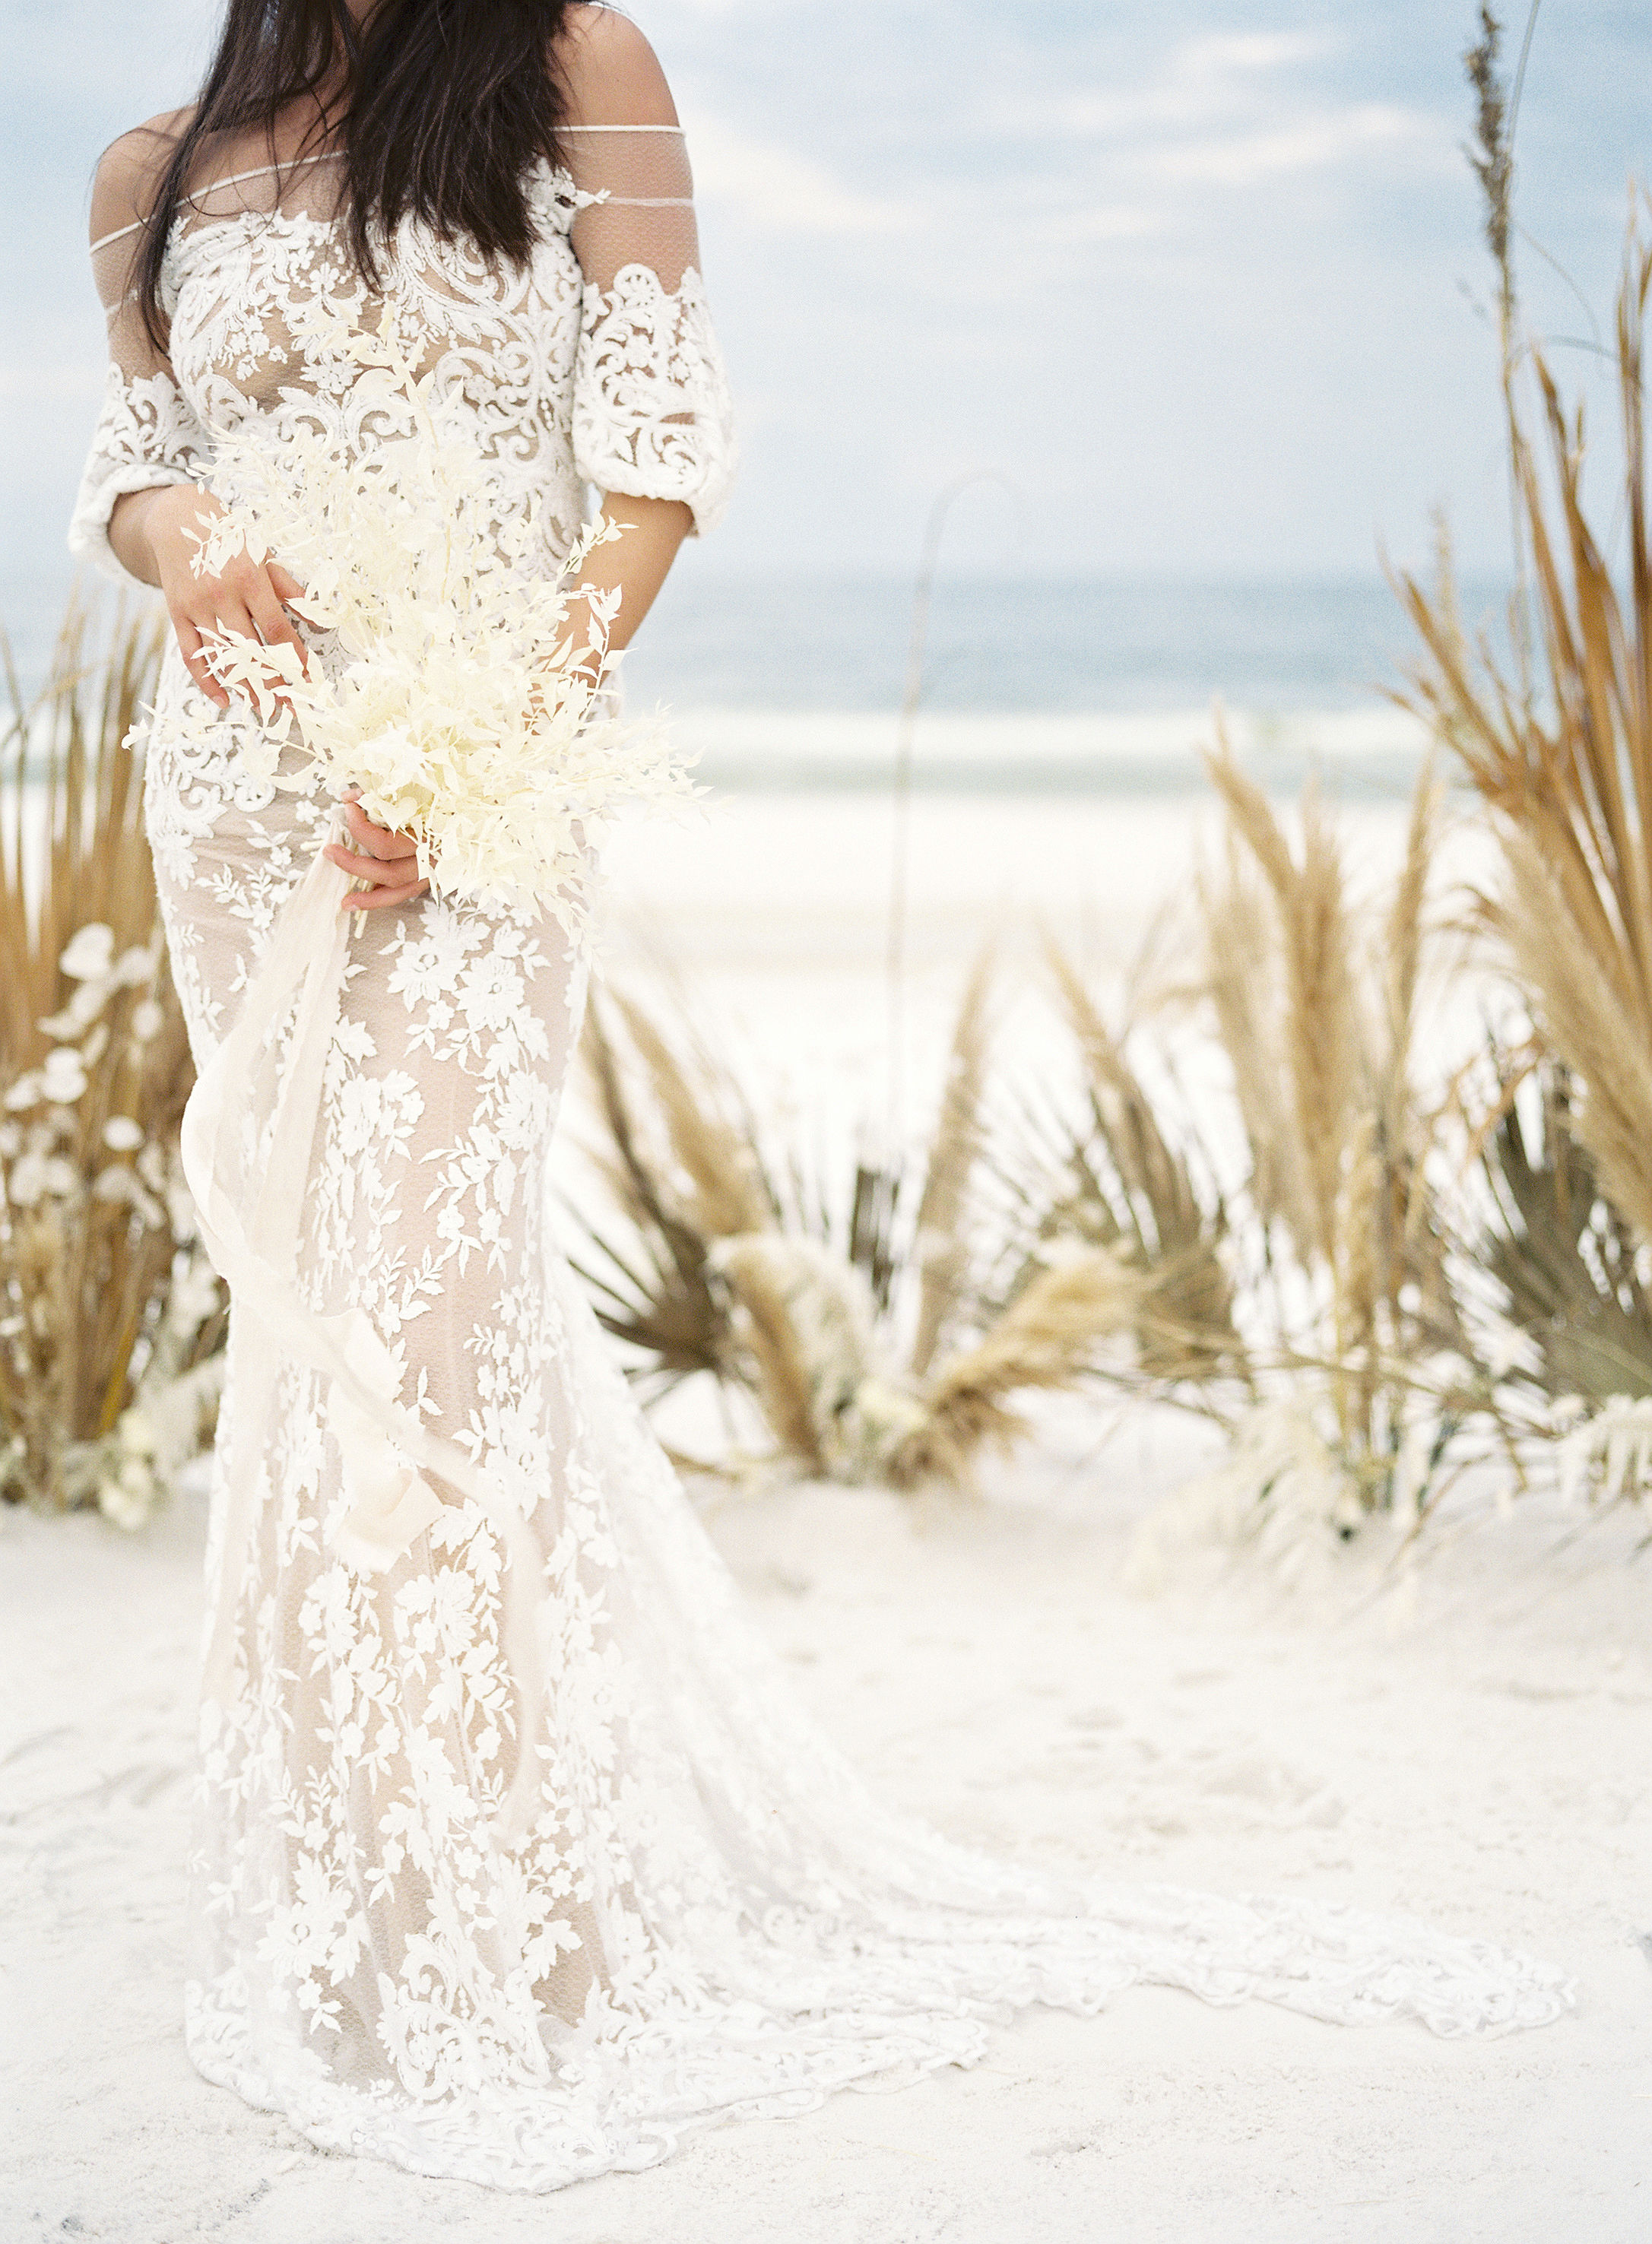 jessica-zimmerman-events-florida-beach-dried-floral.jpg